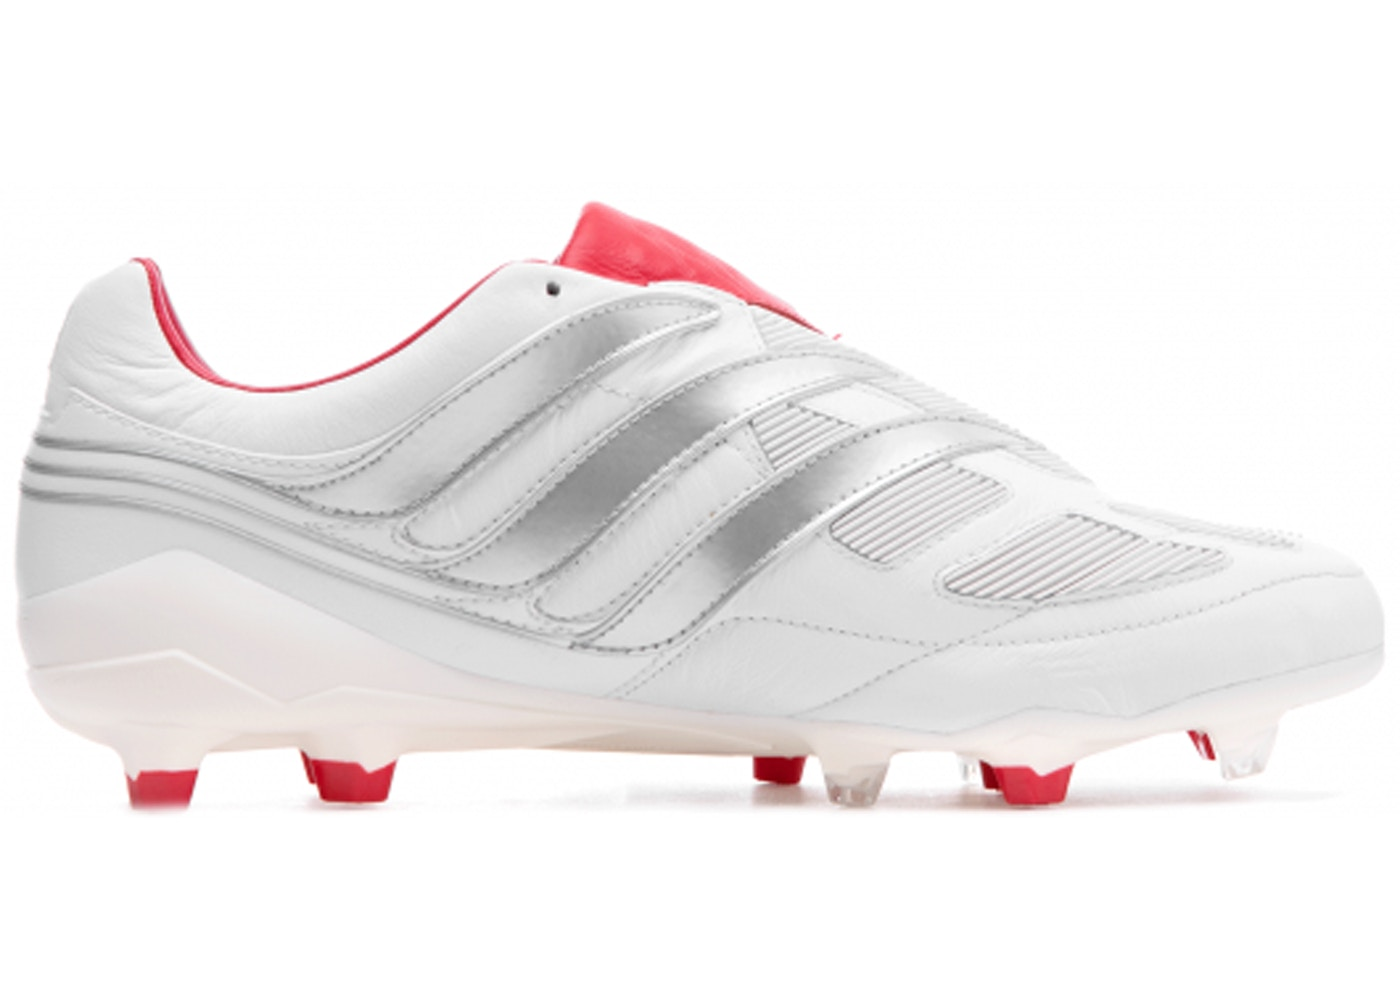 adidas Predator Precision FG 25 Year Pack David Beckham